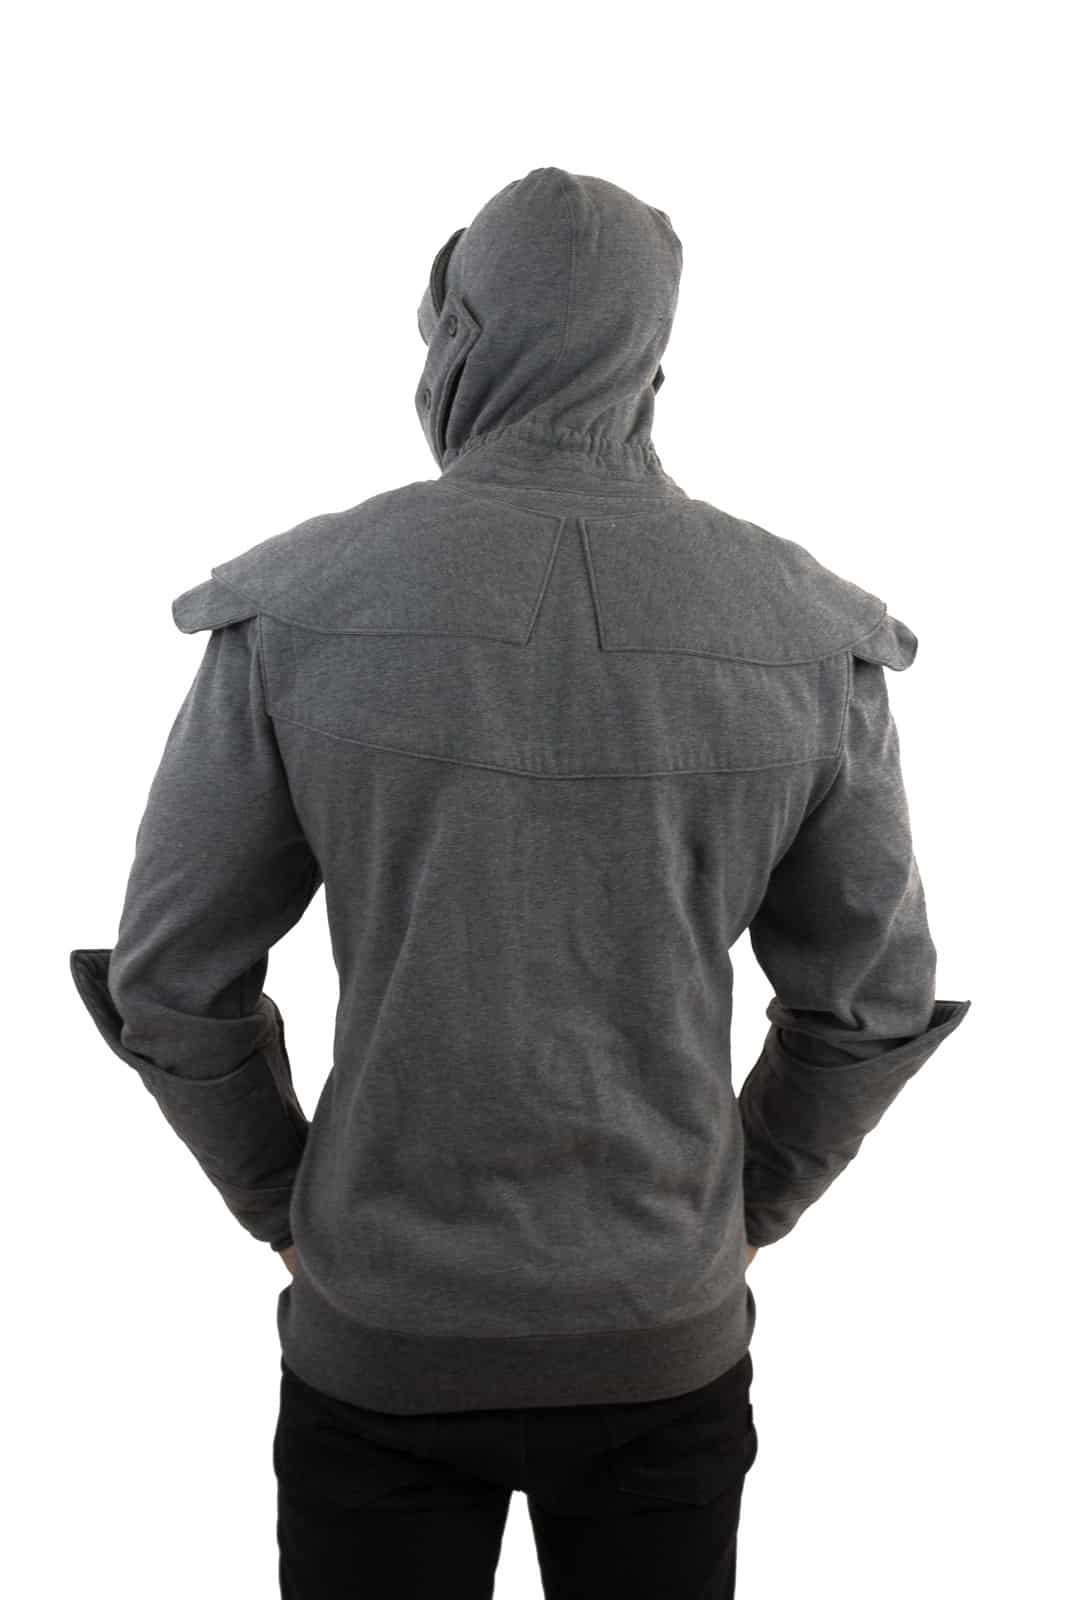 Official Knight Hoodie Rear View